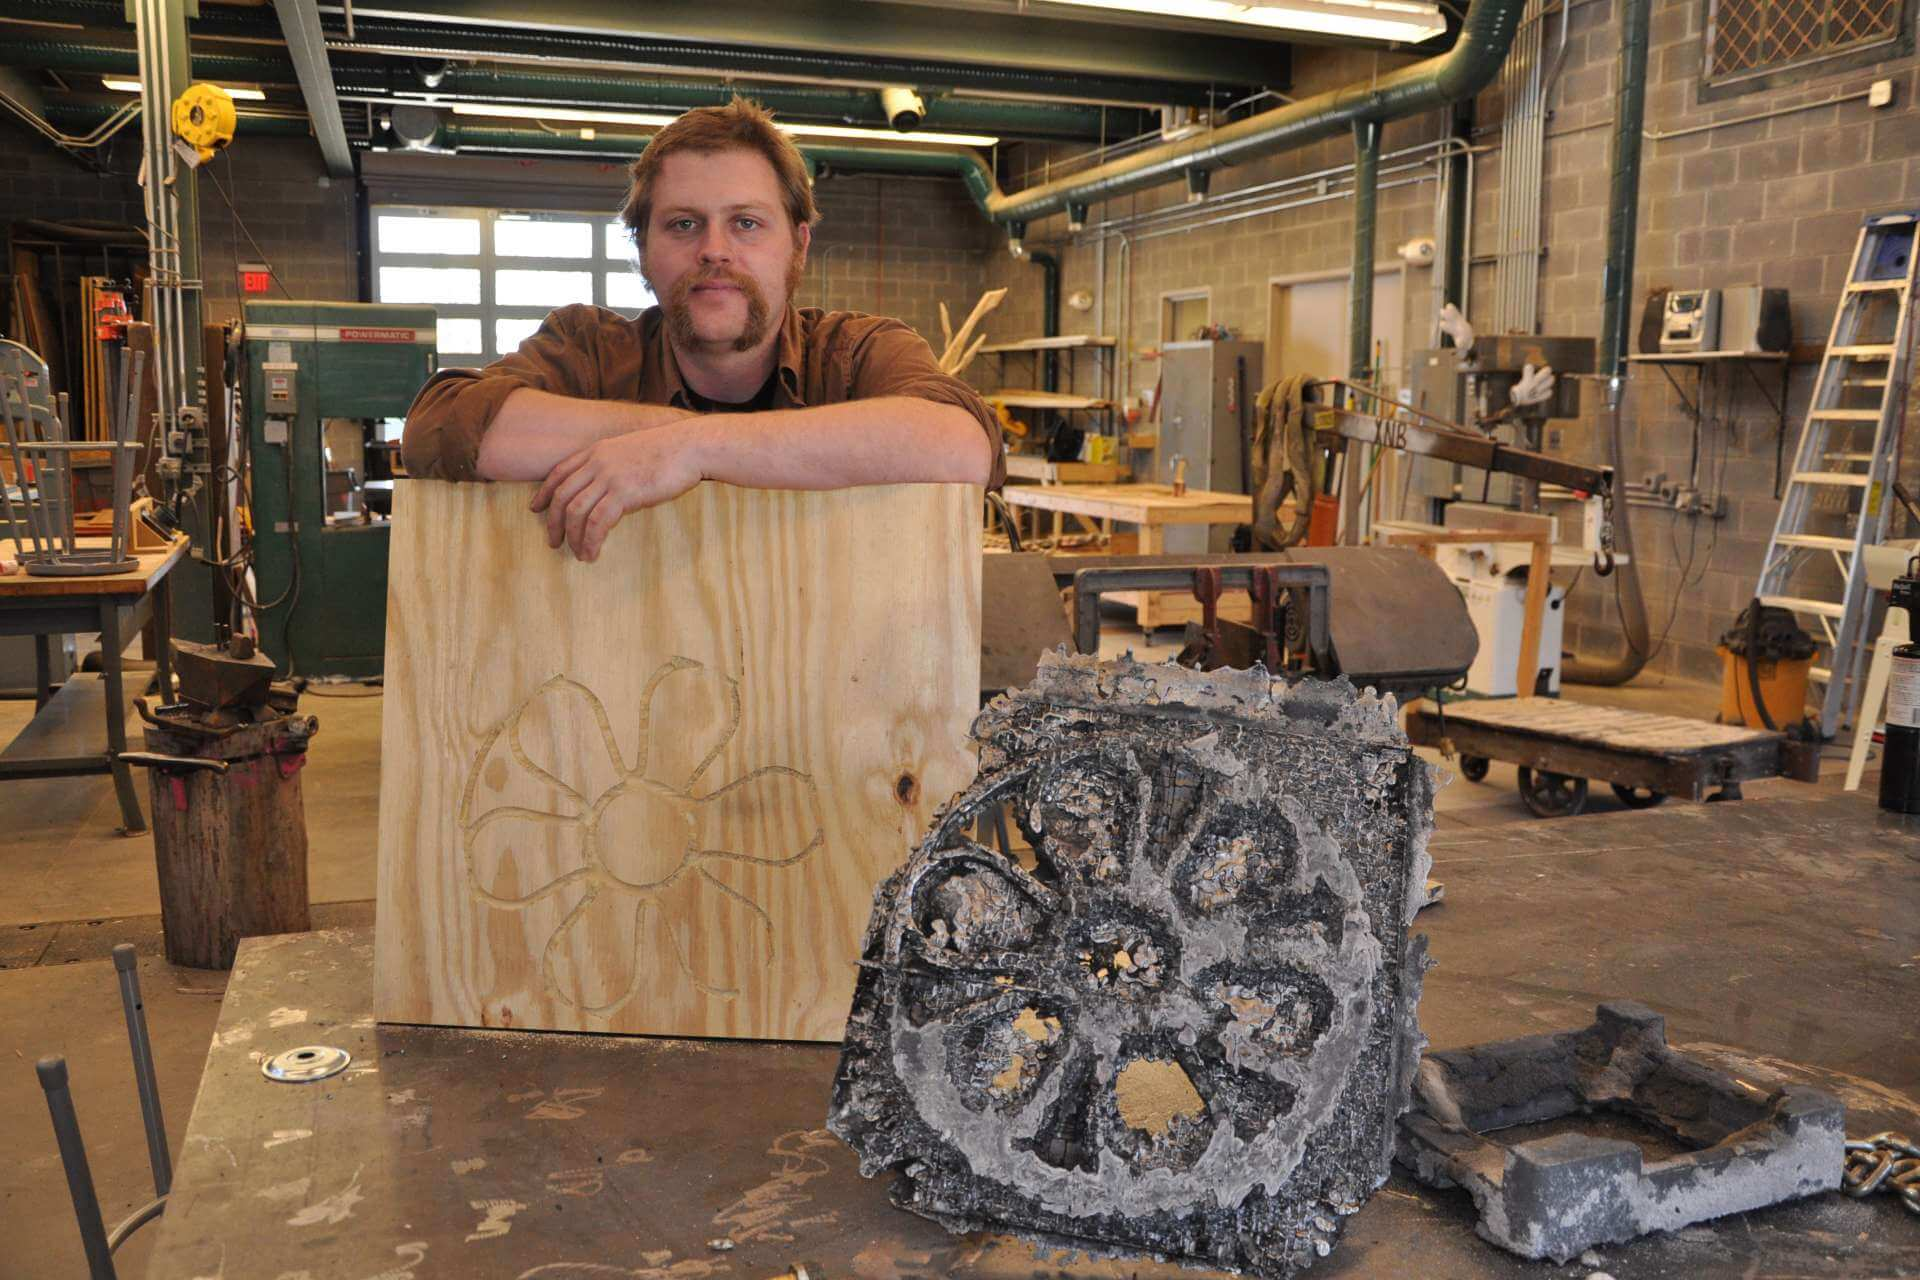 Christian Benefiel, assistant professor of art, makes scuptures from a variety of materials. During the most recent metal pour event he created molds from wood.